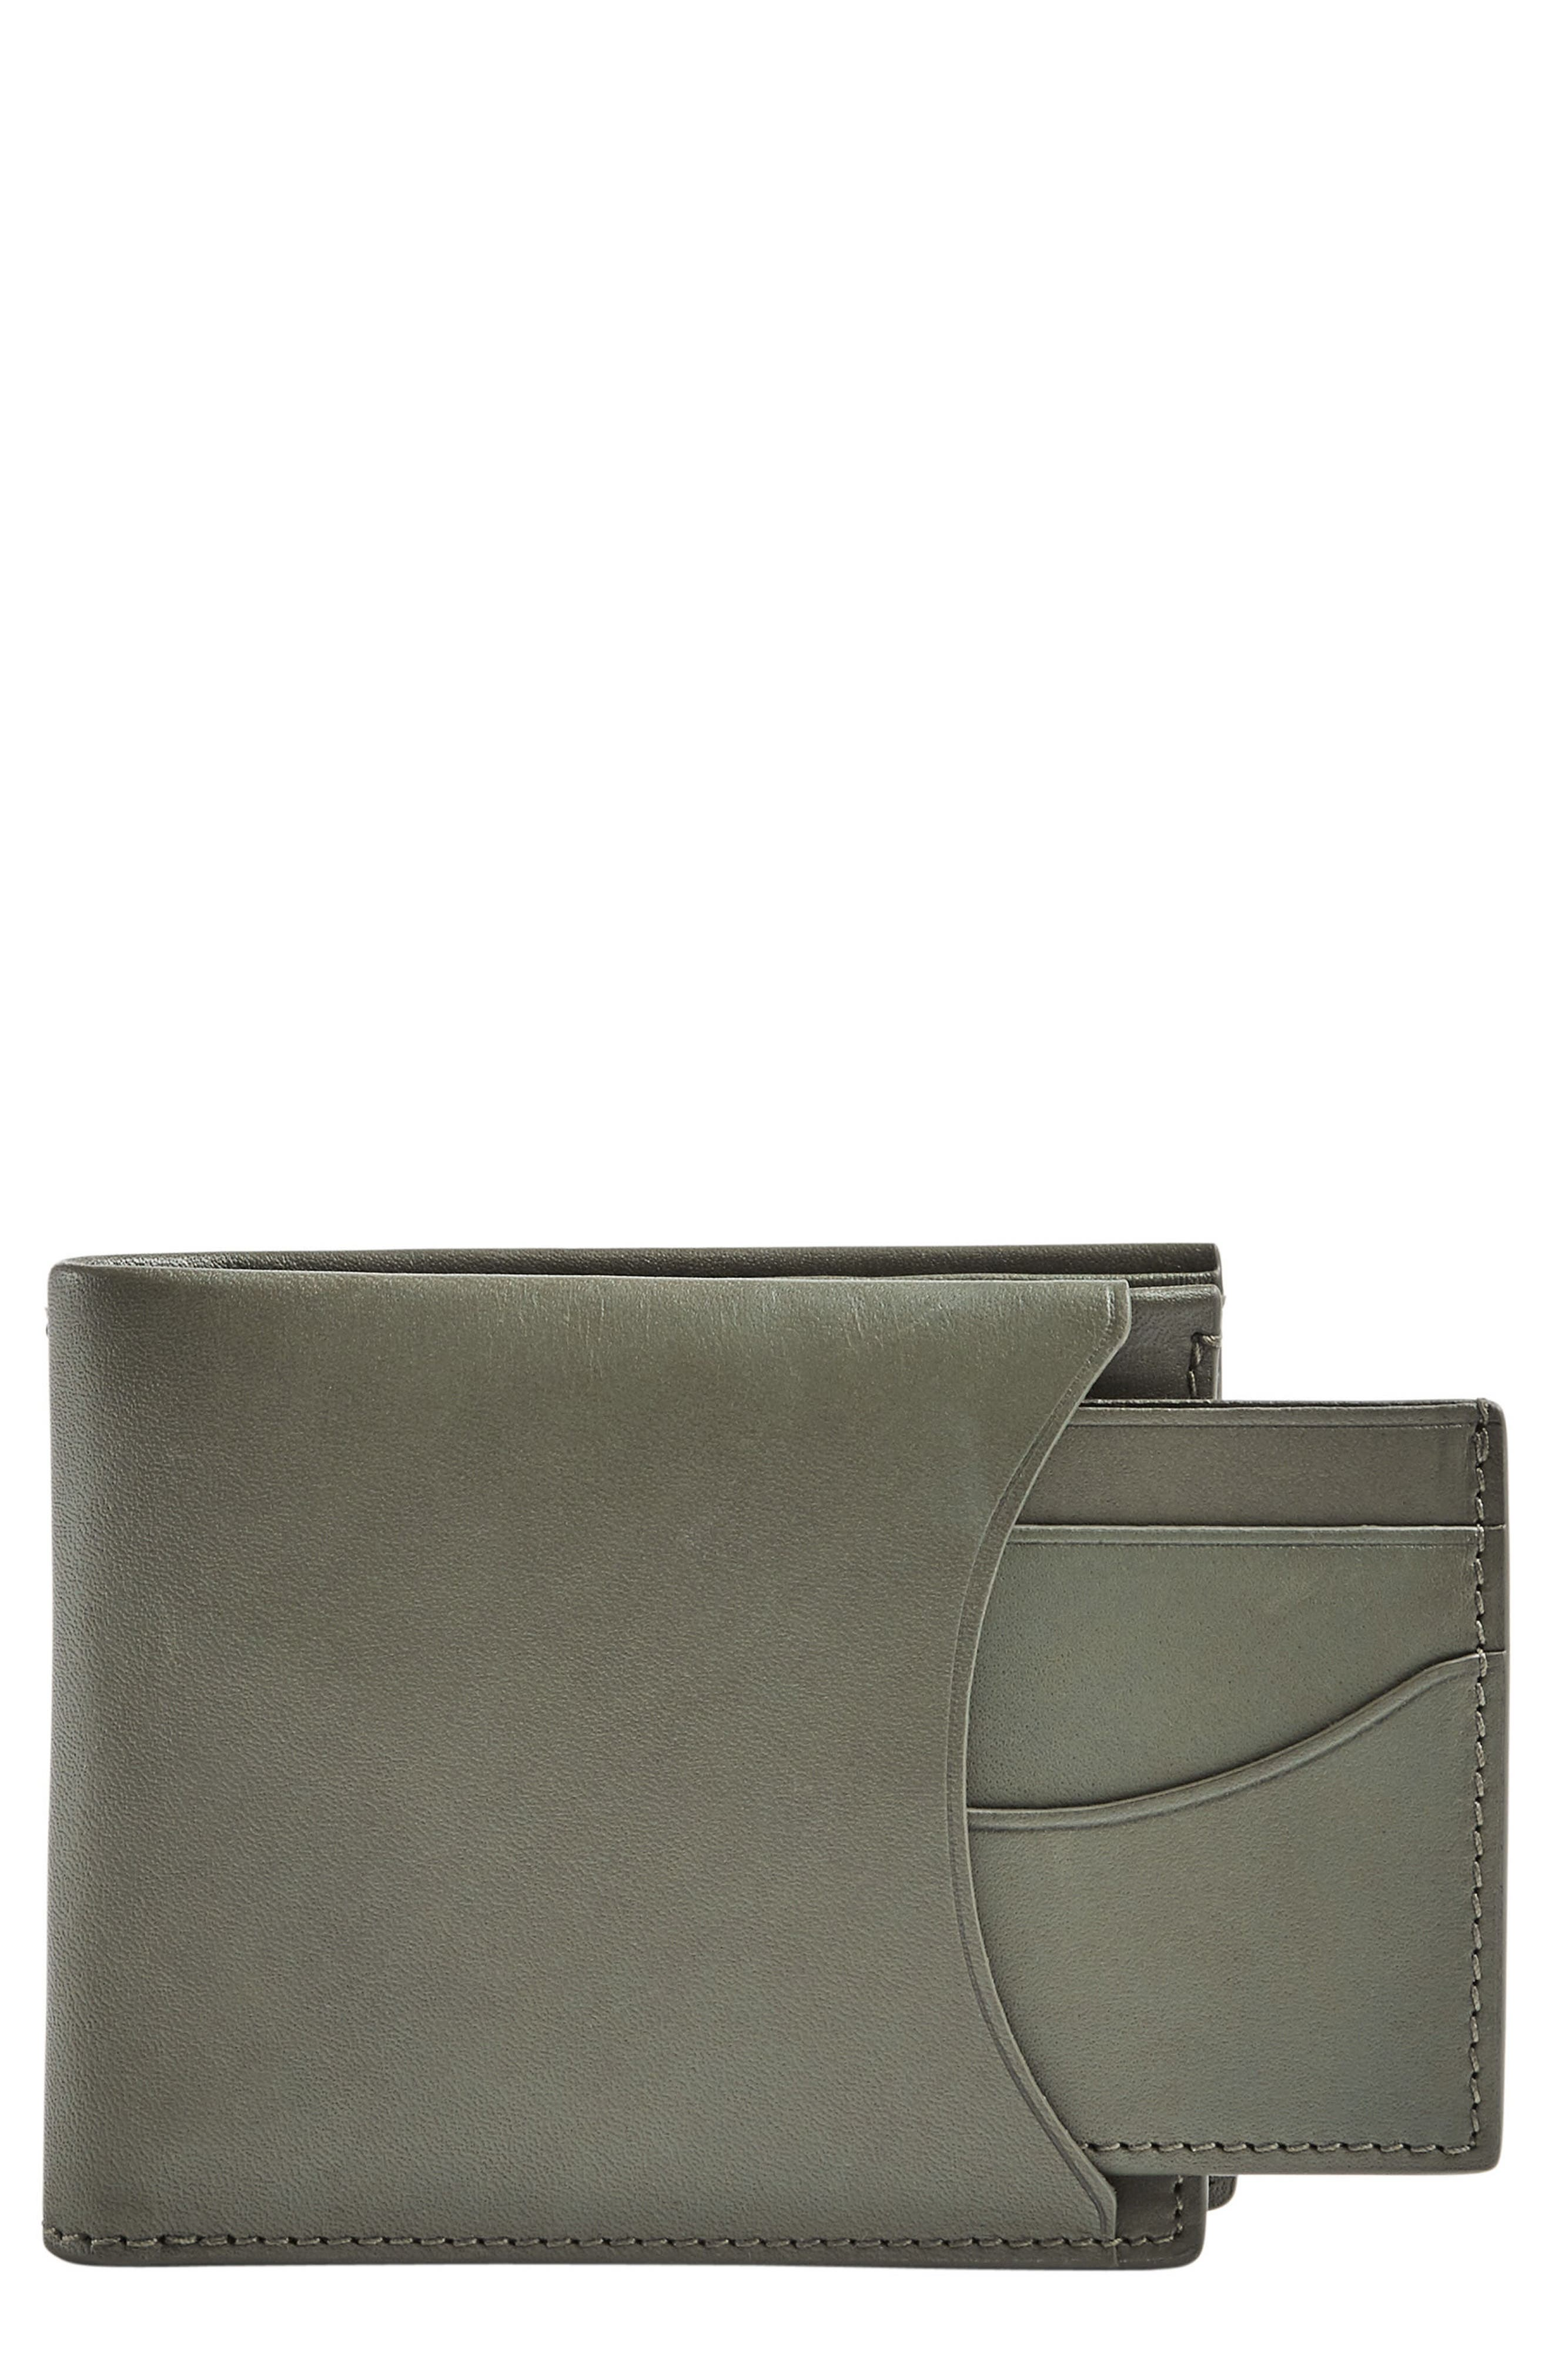 Alternate Image 1 Selected - Skagen Leather Passcase Wallet